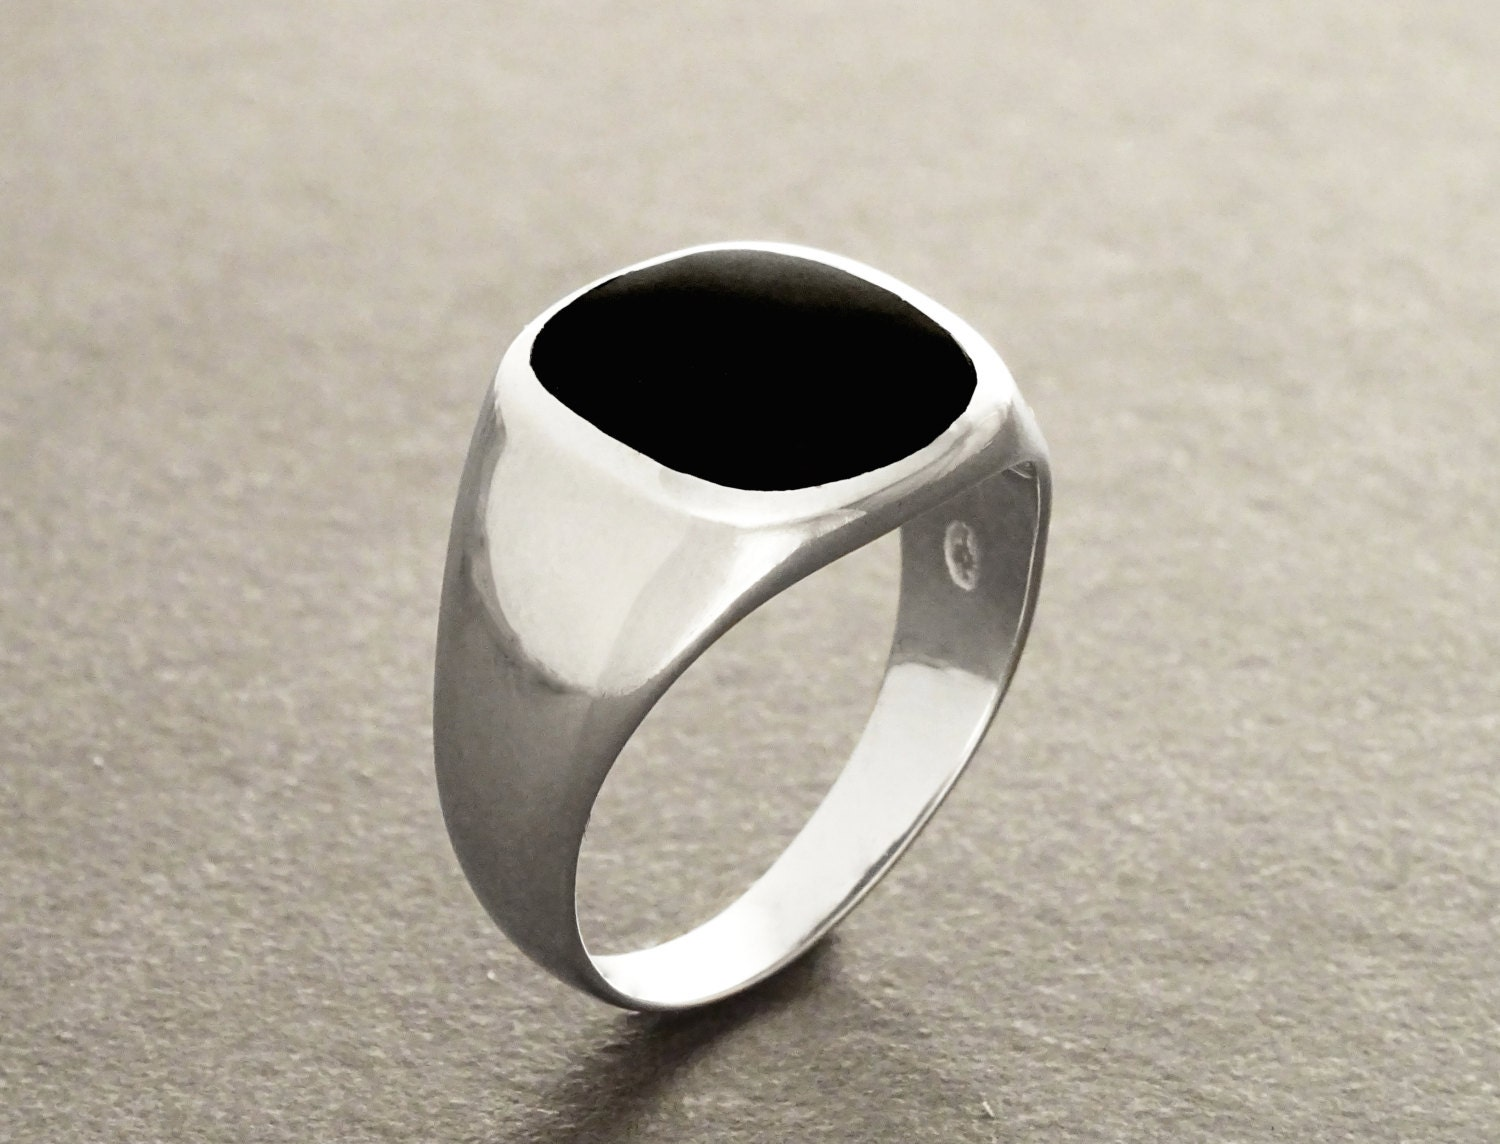 hipster rings for men - photo #1